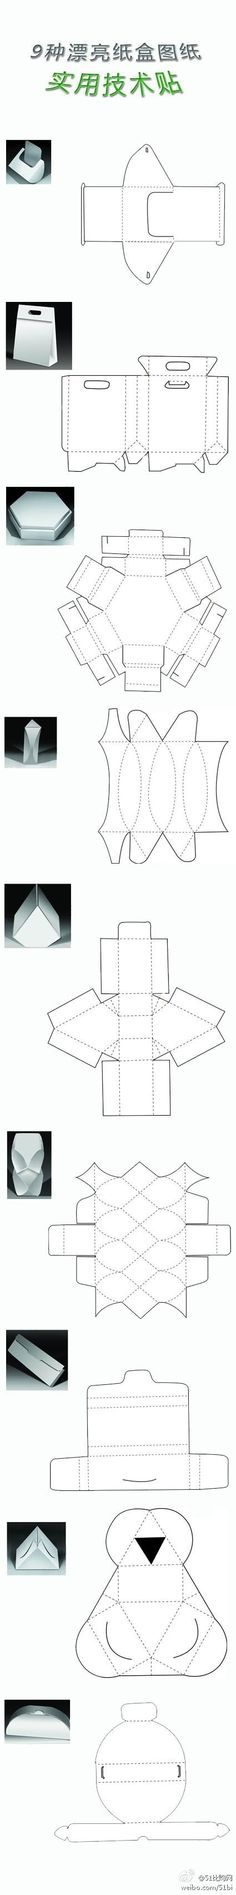 Dielines for packaging structures